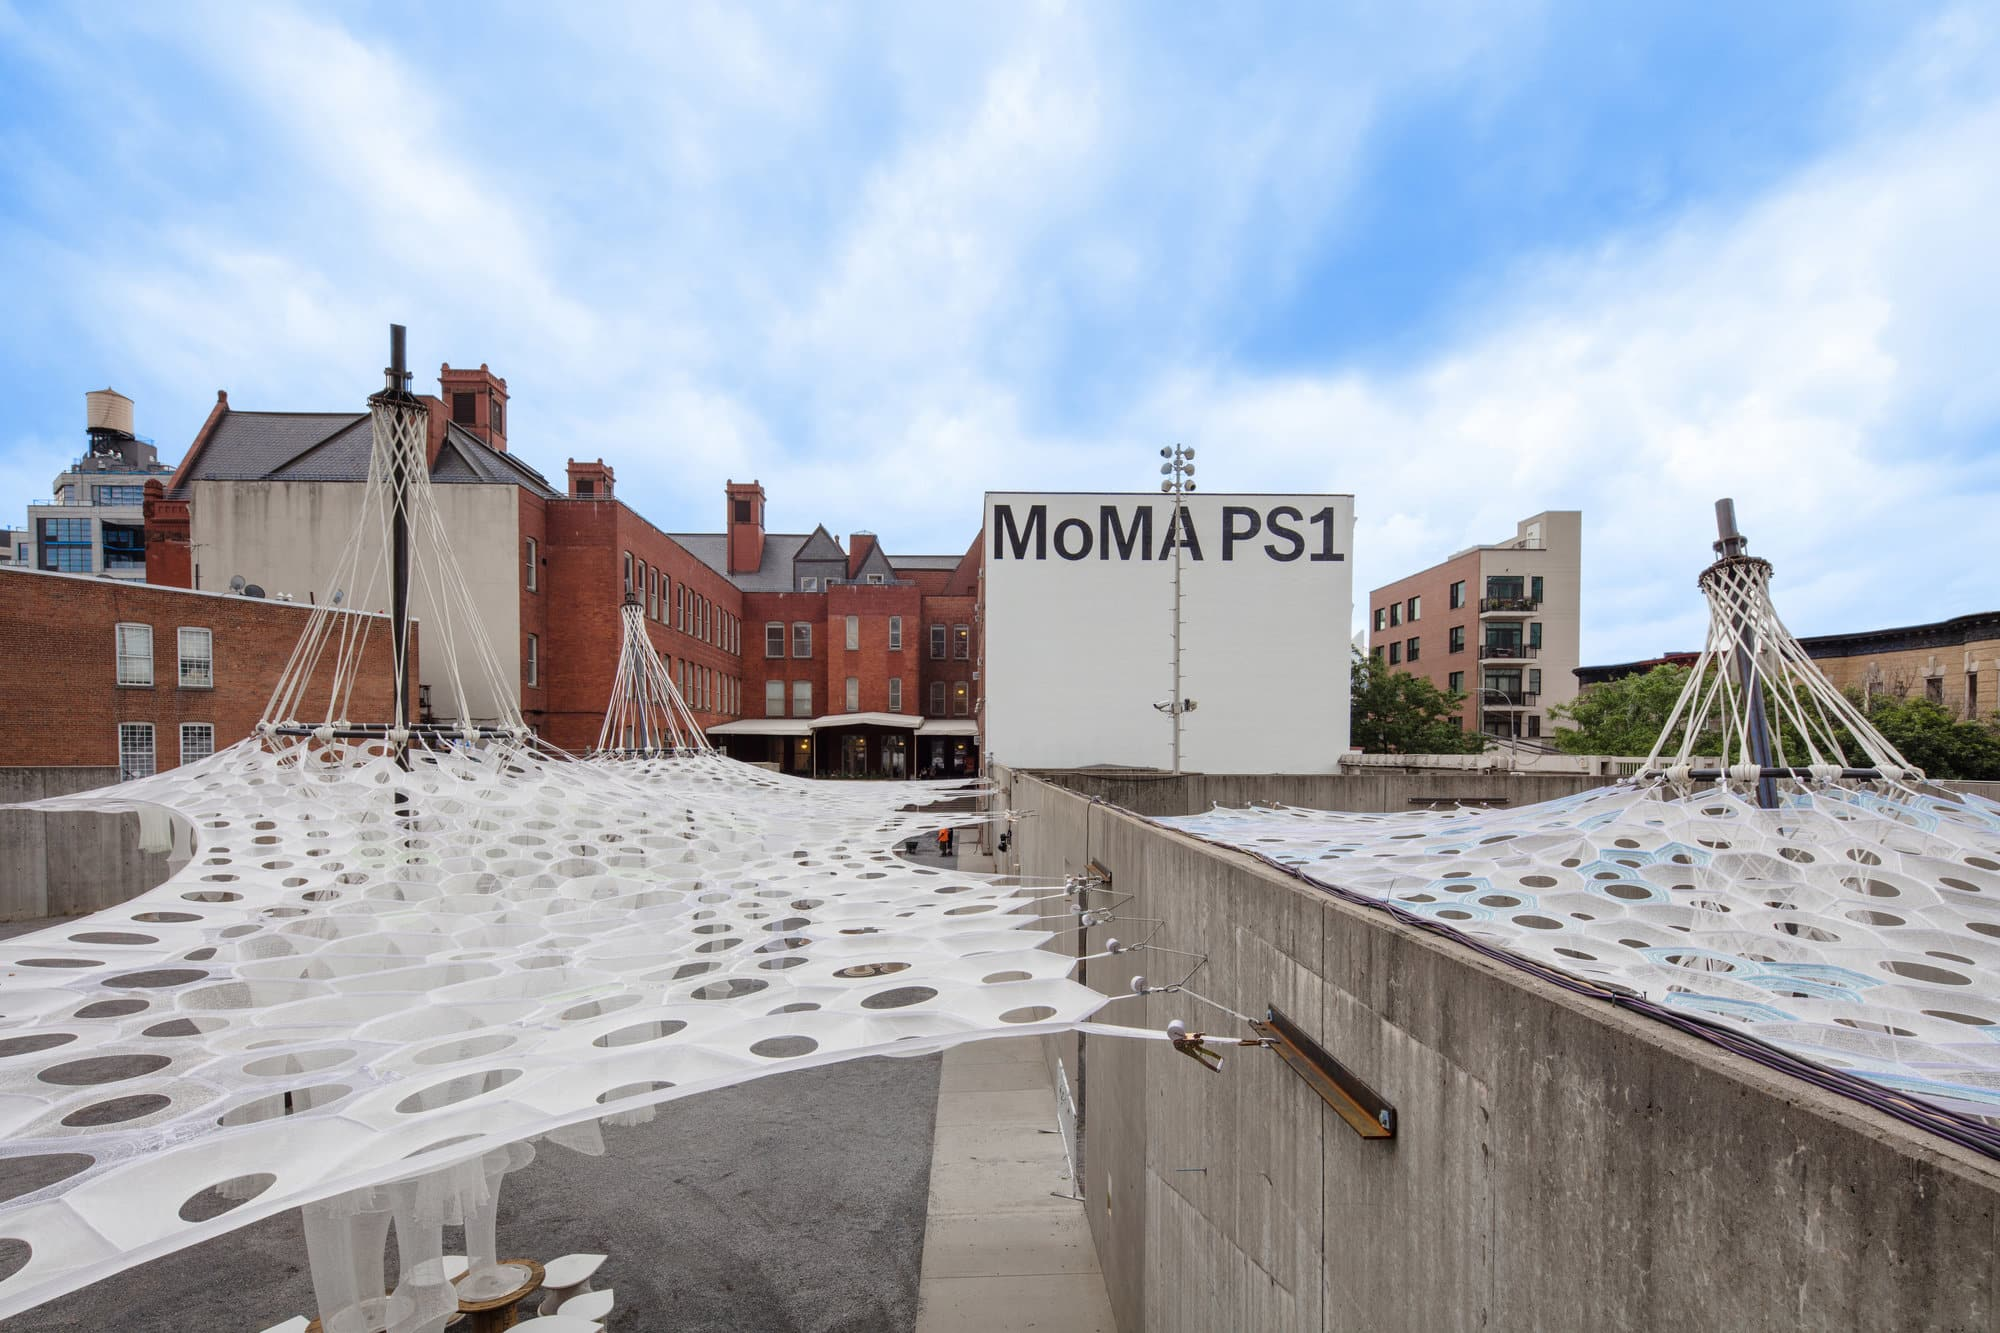 The MoMA PS1 Museum